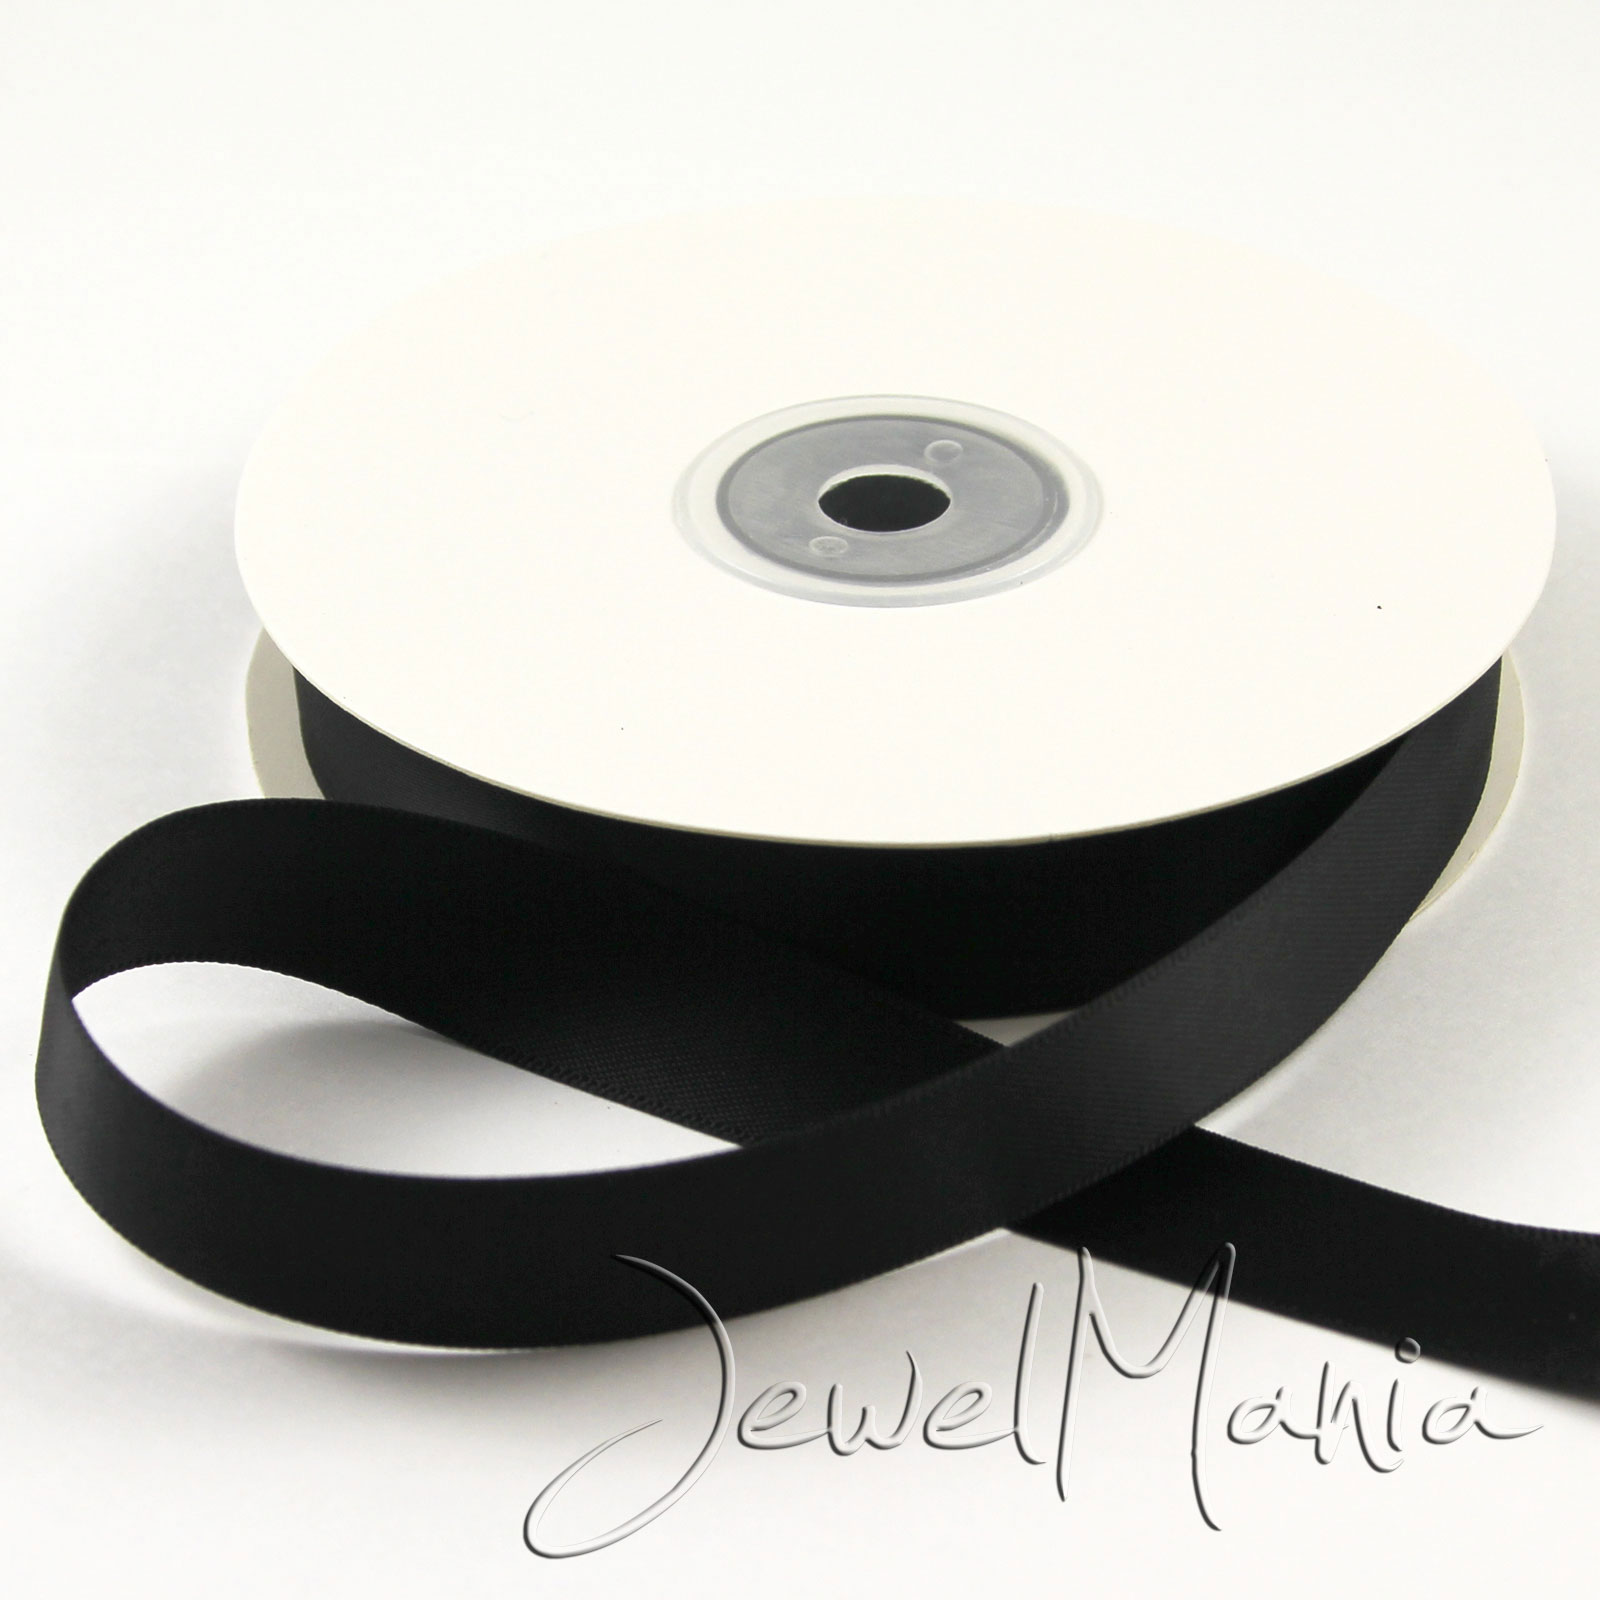 25-Metres-Of-15mm-DOUBLE-FACED-Sided-PREMIUM-SATIN-RIBBON-Rolls-Many-Colours